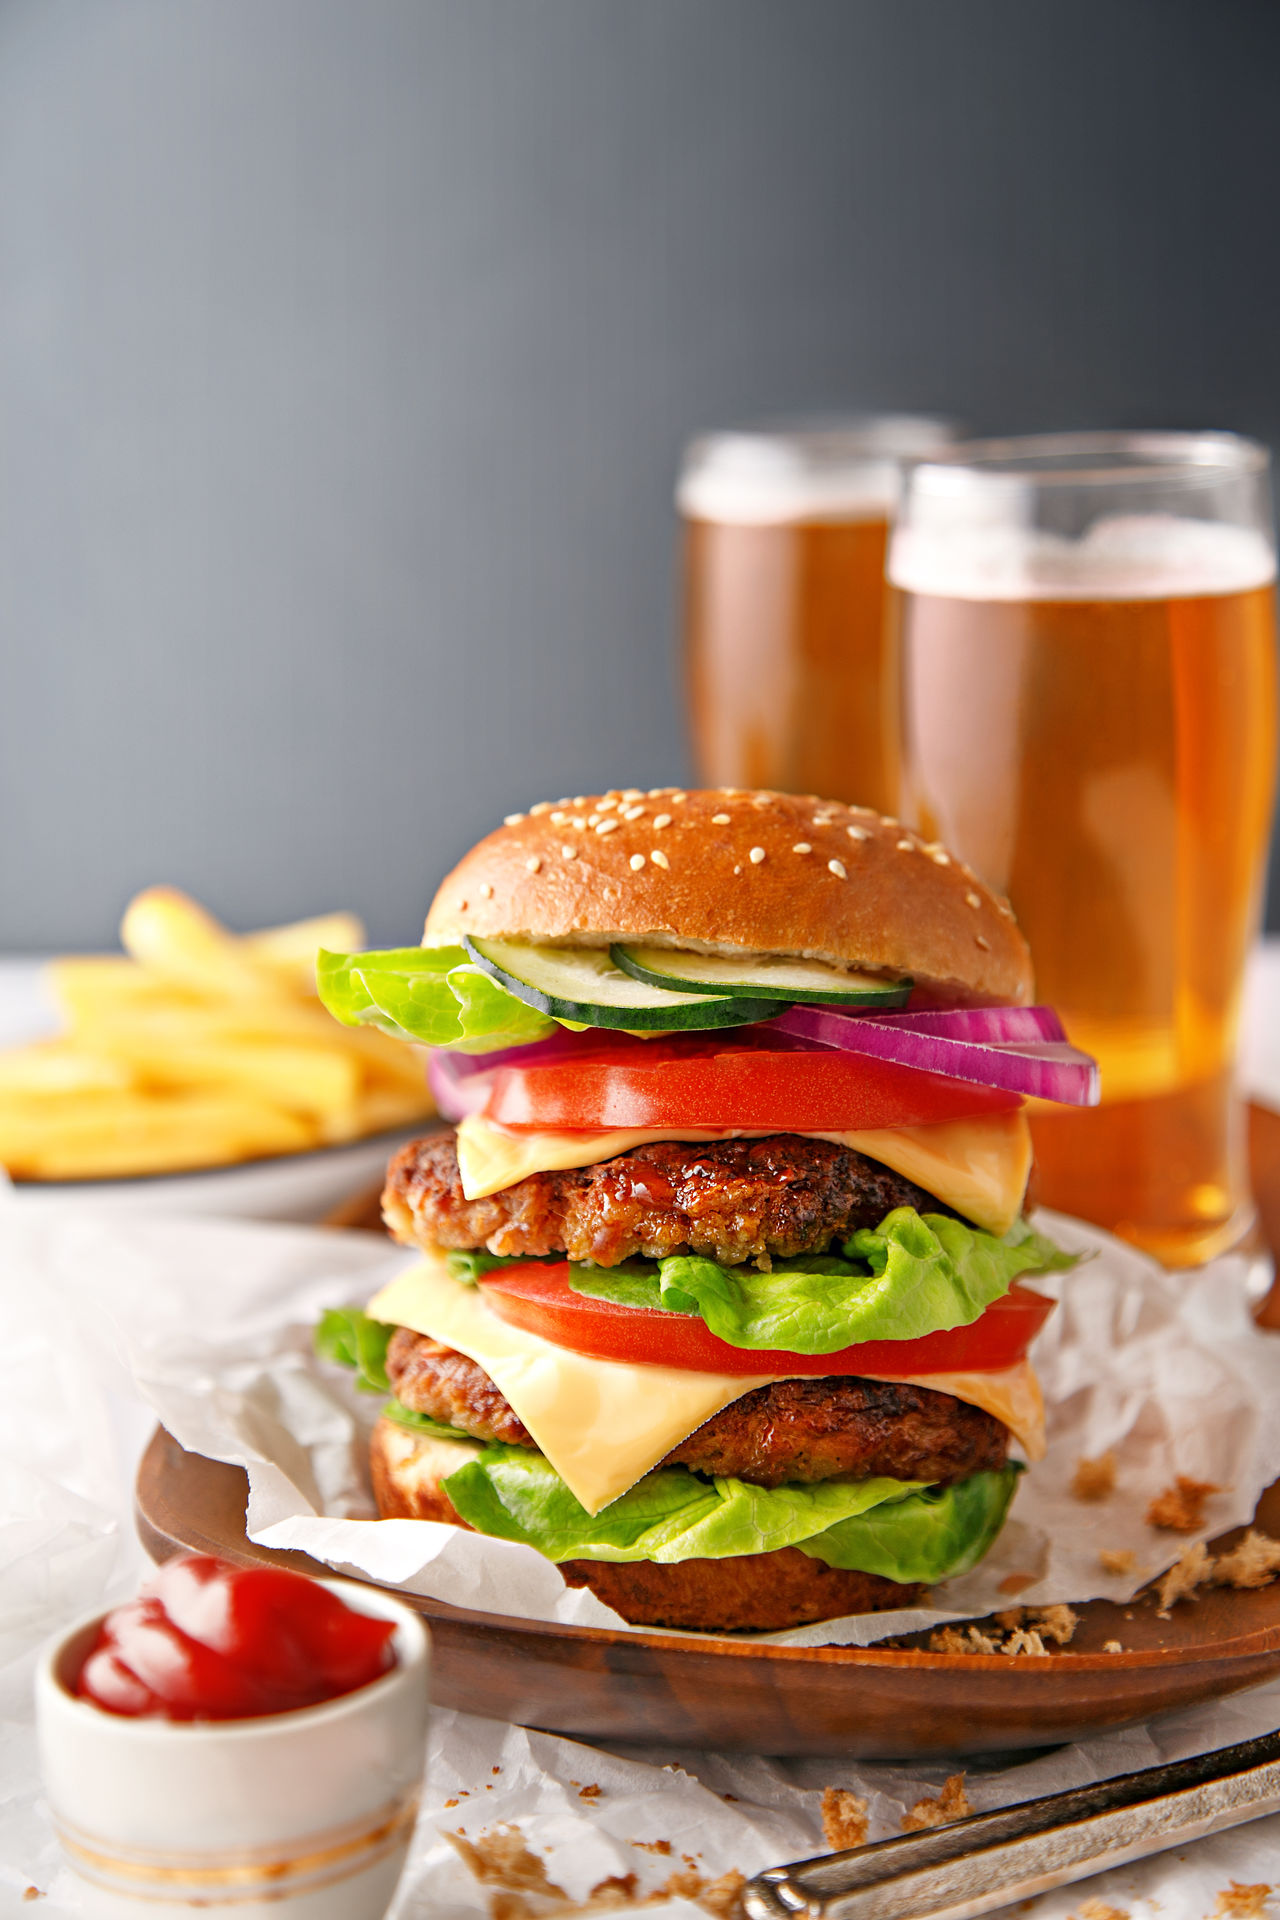 Tasty hamburger with french fries and beer in the background Bread Bun Cheese CheeseBurger Food And Drink Garnish Gourmet Ground Beef Hamburger Homemade Indoors  Lettuce Meal Meat Minced No People Prepared Potato Ready-to-eat Sesame Snack Studio Shot Take Out Food Tomato Unhealthy Eating Vegetable